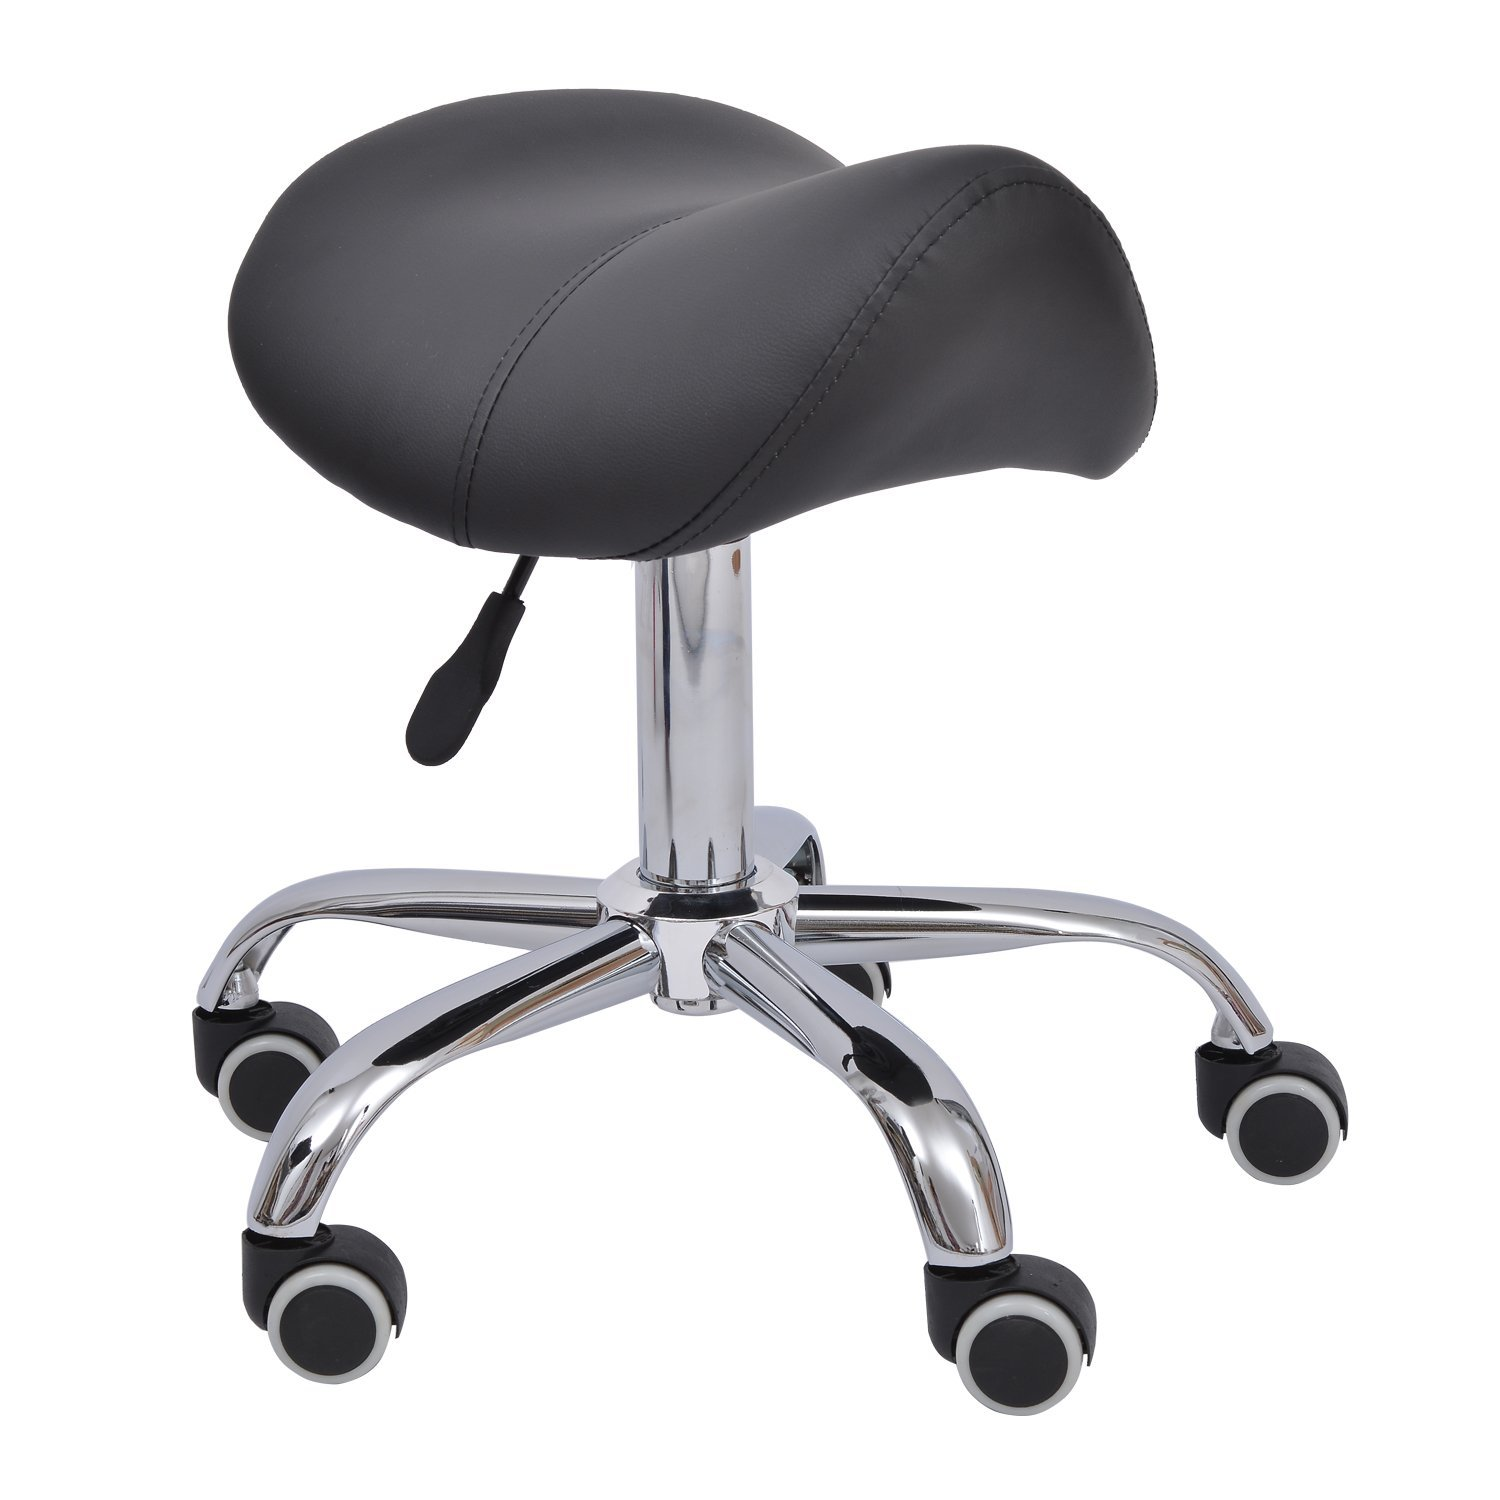 HOMCOM Stool Saddle For Hairdresser Salon Aesthetic Height Adjustable With Wheels 52 × 53 × 49-61 Black Inches